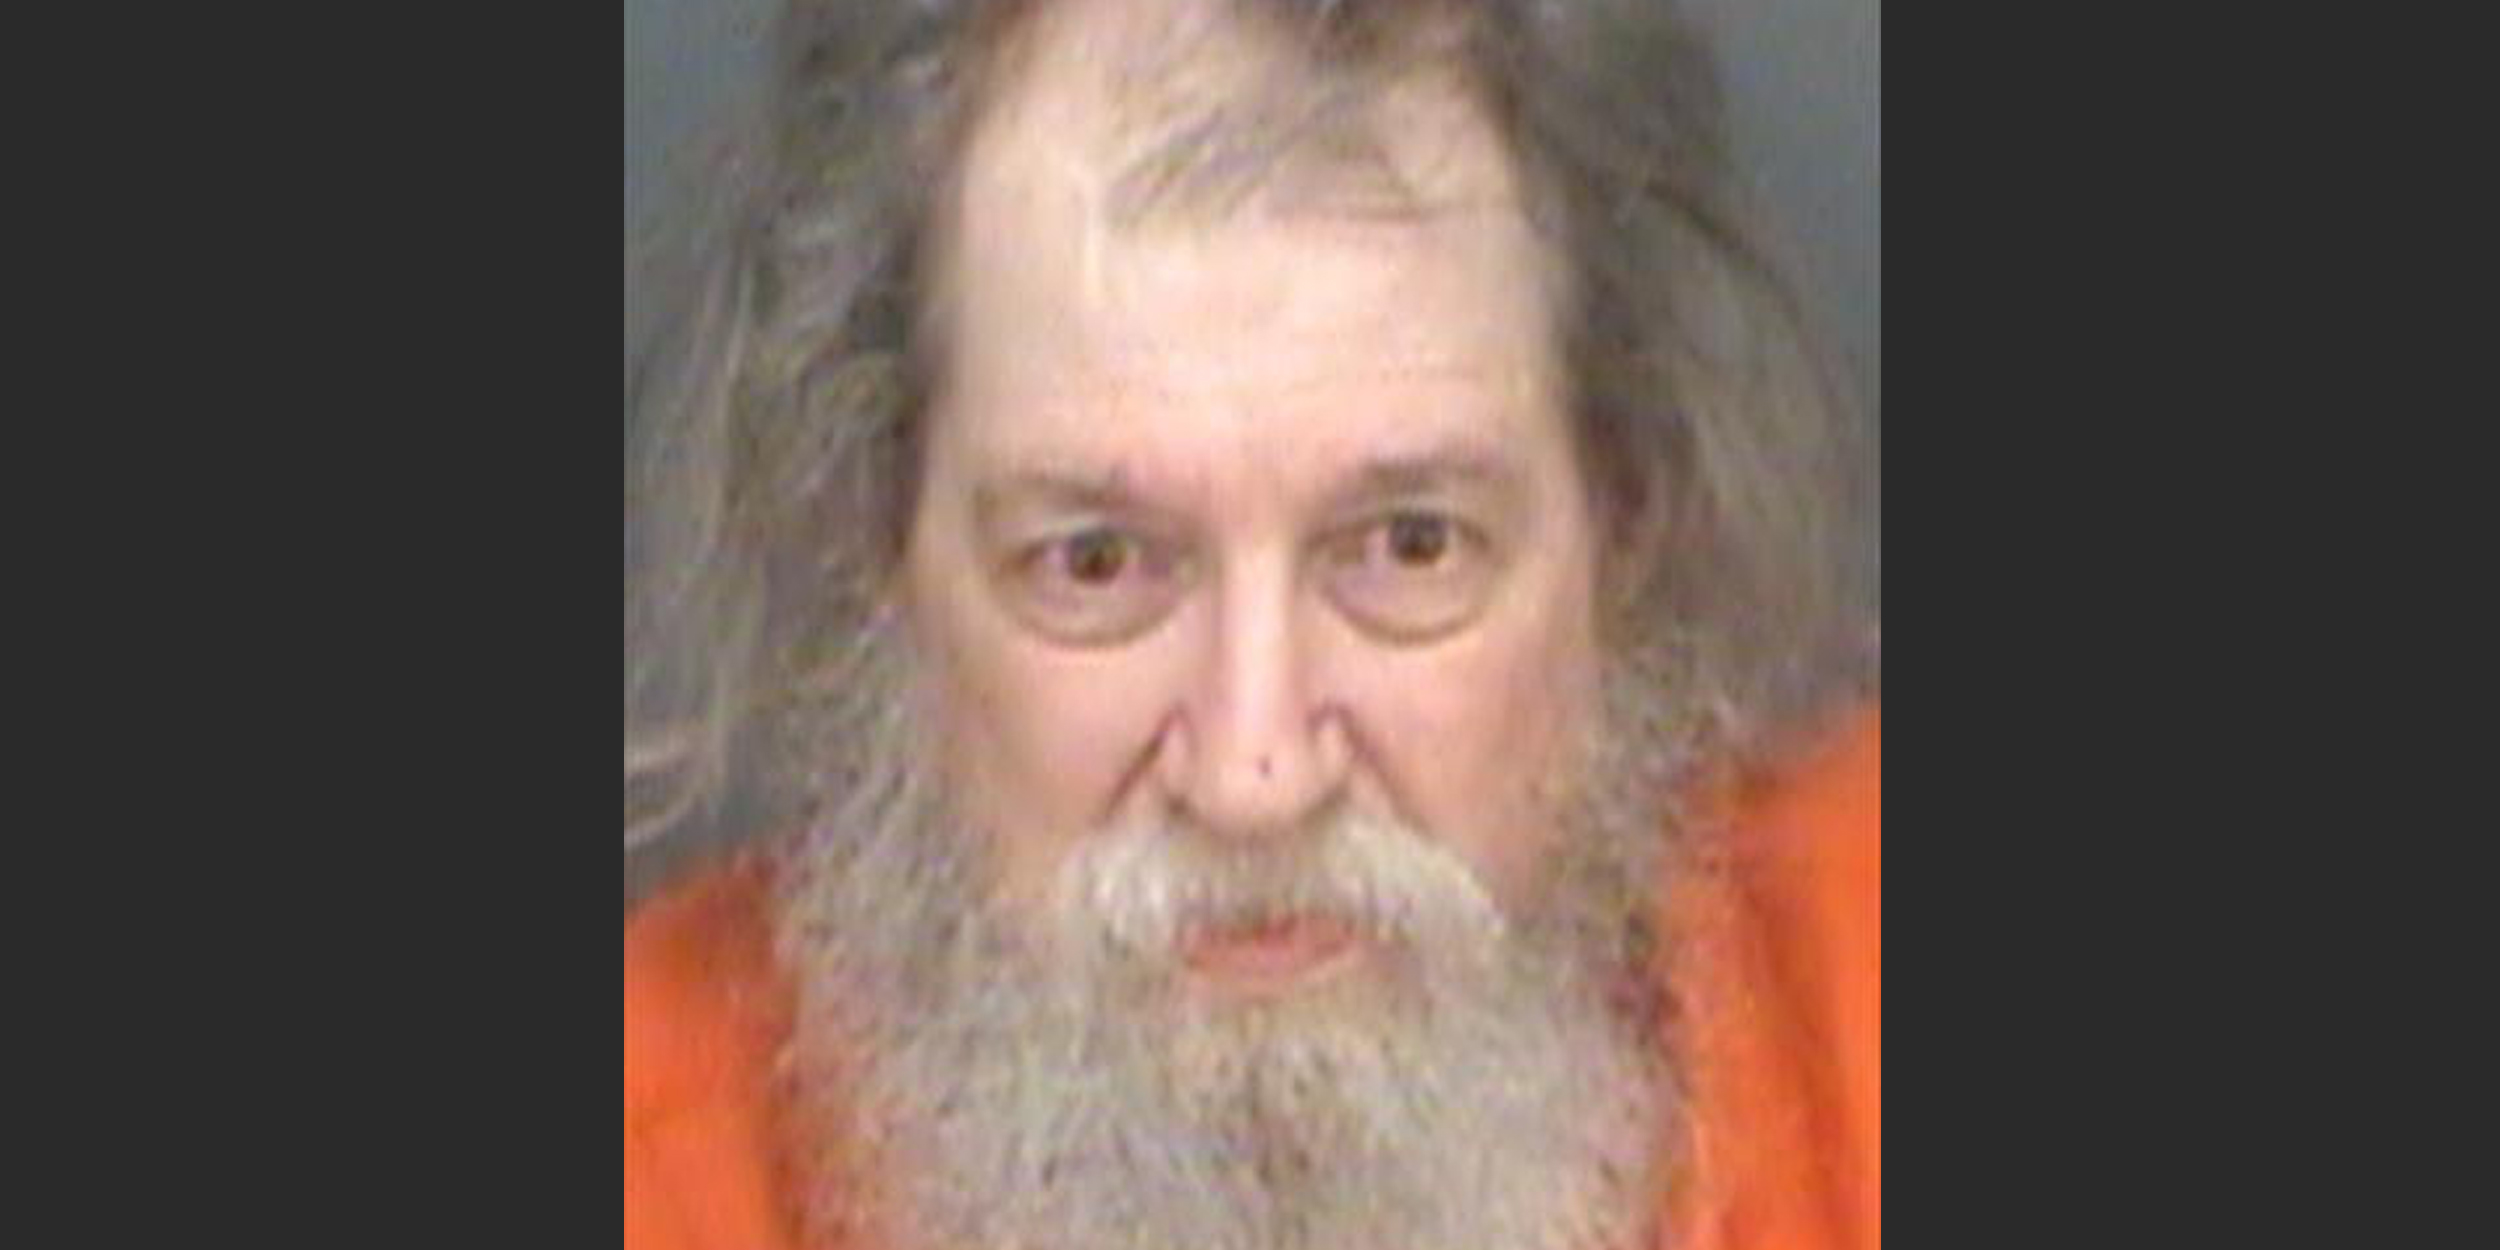 Florida Army veteran allegedly planted bomb at VA hospital, had another at home